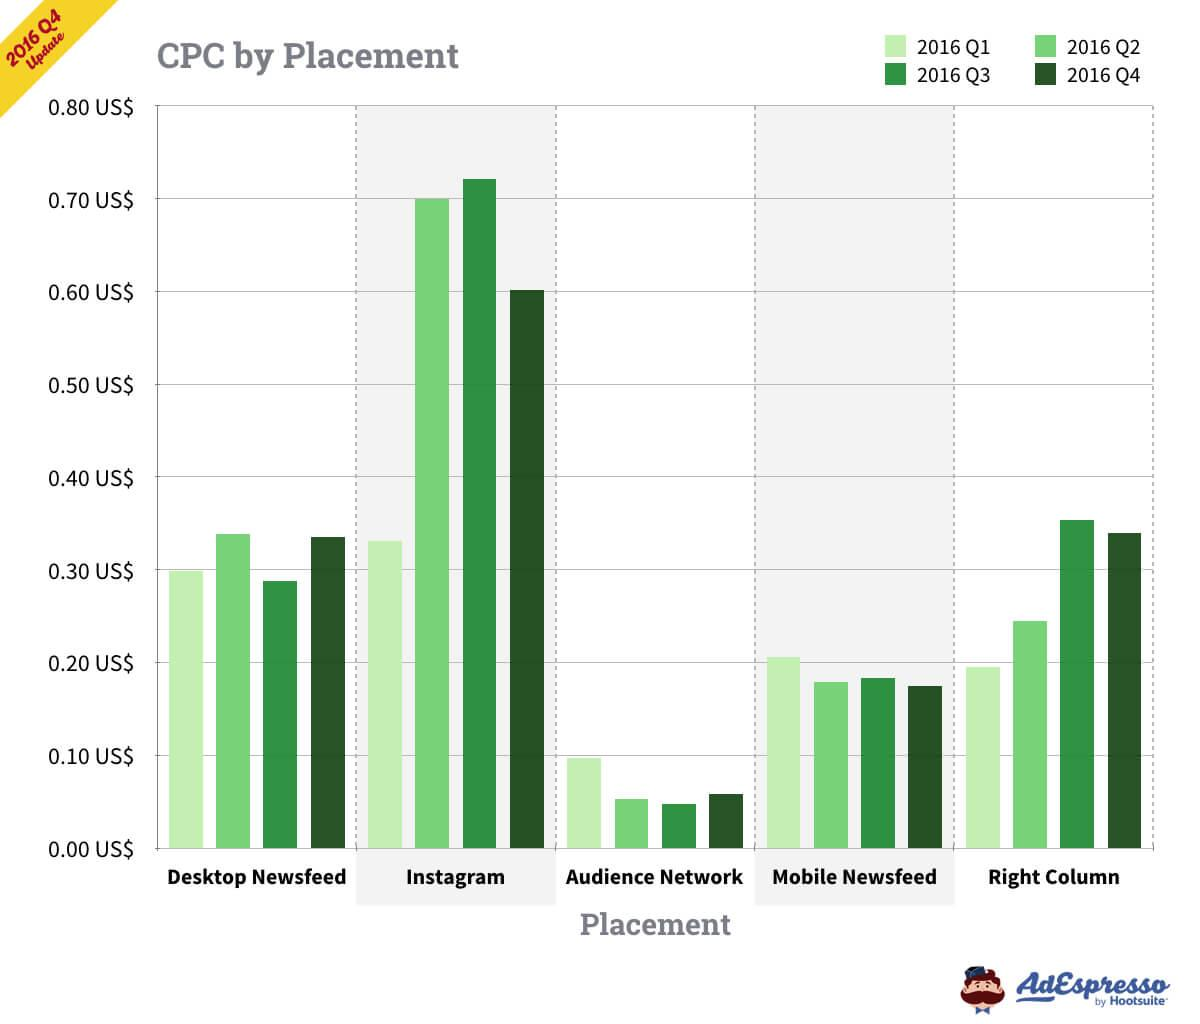 facebook ads cost per click by placement